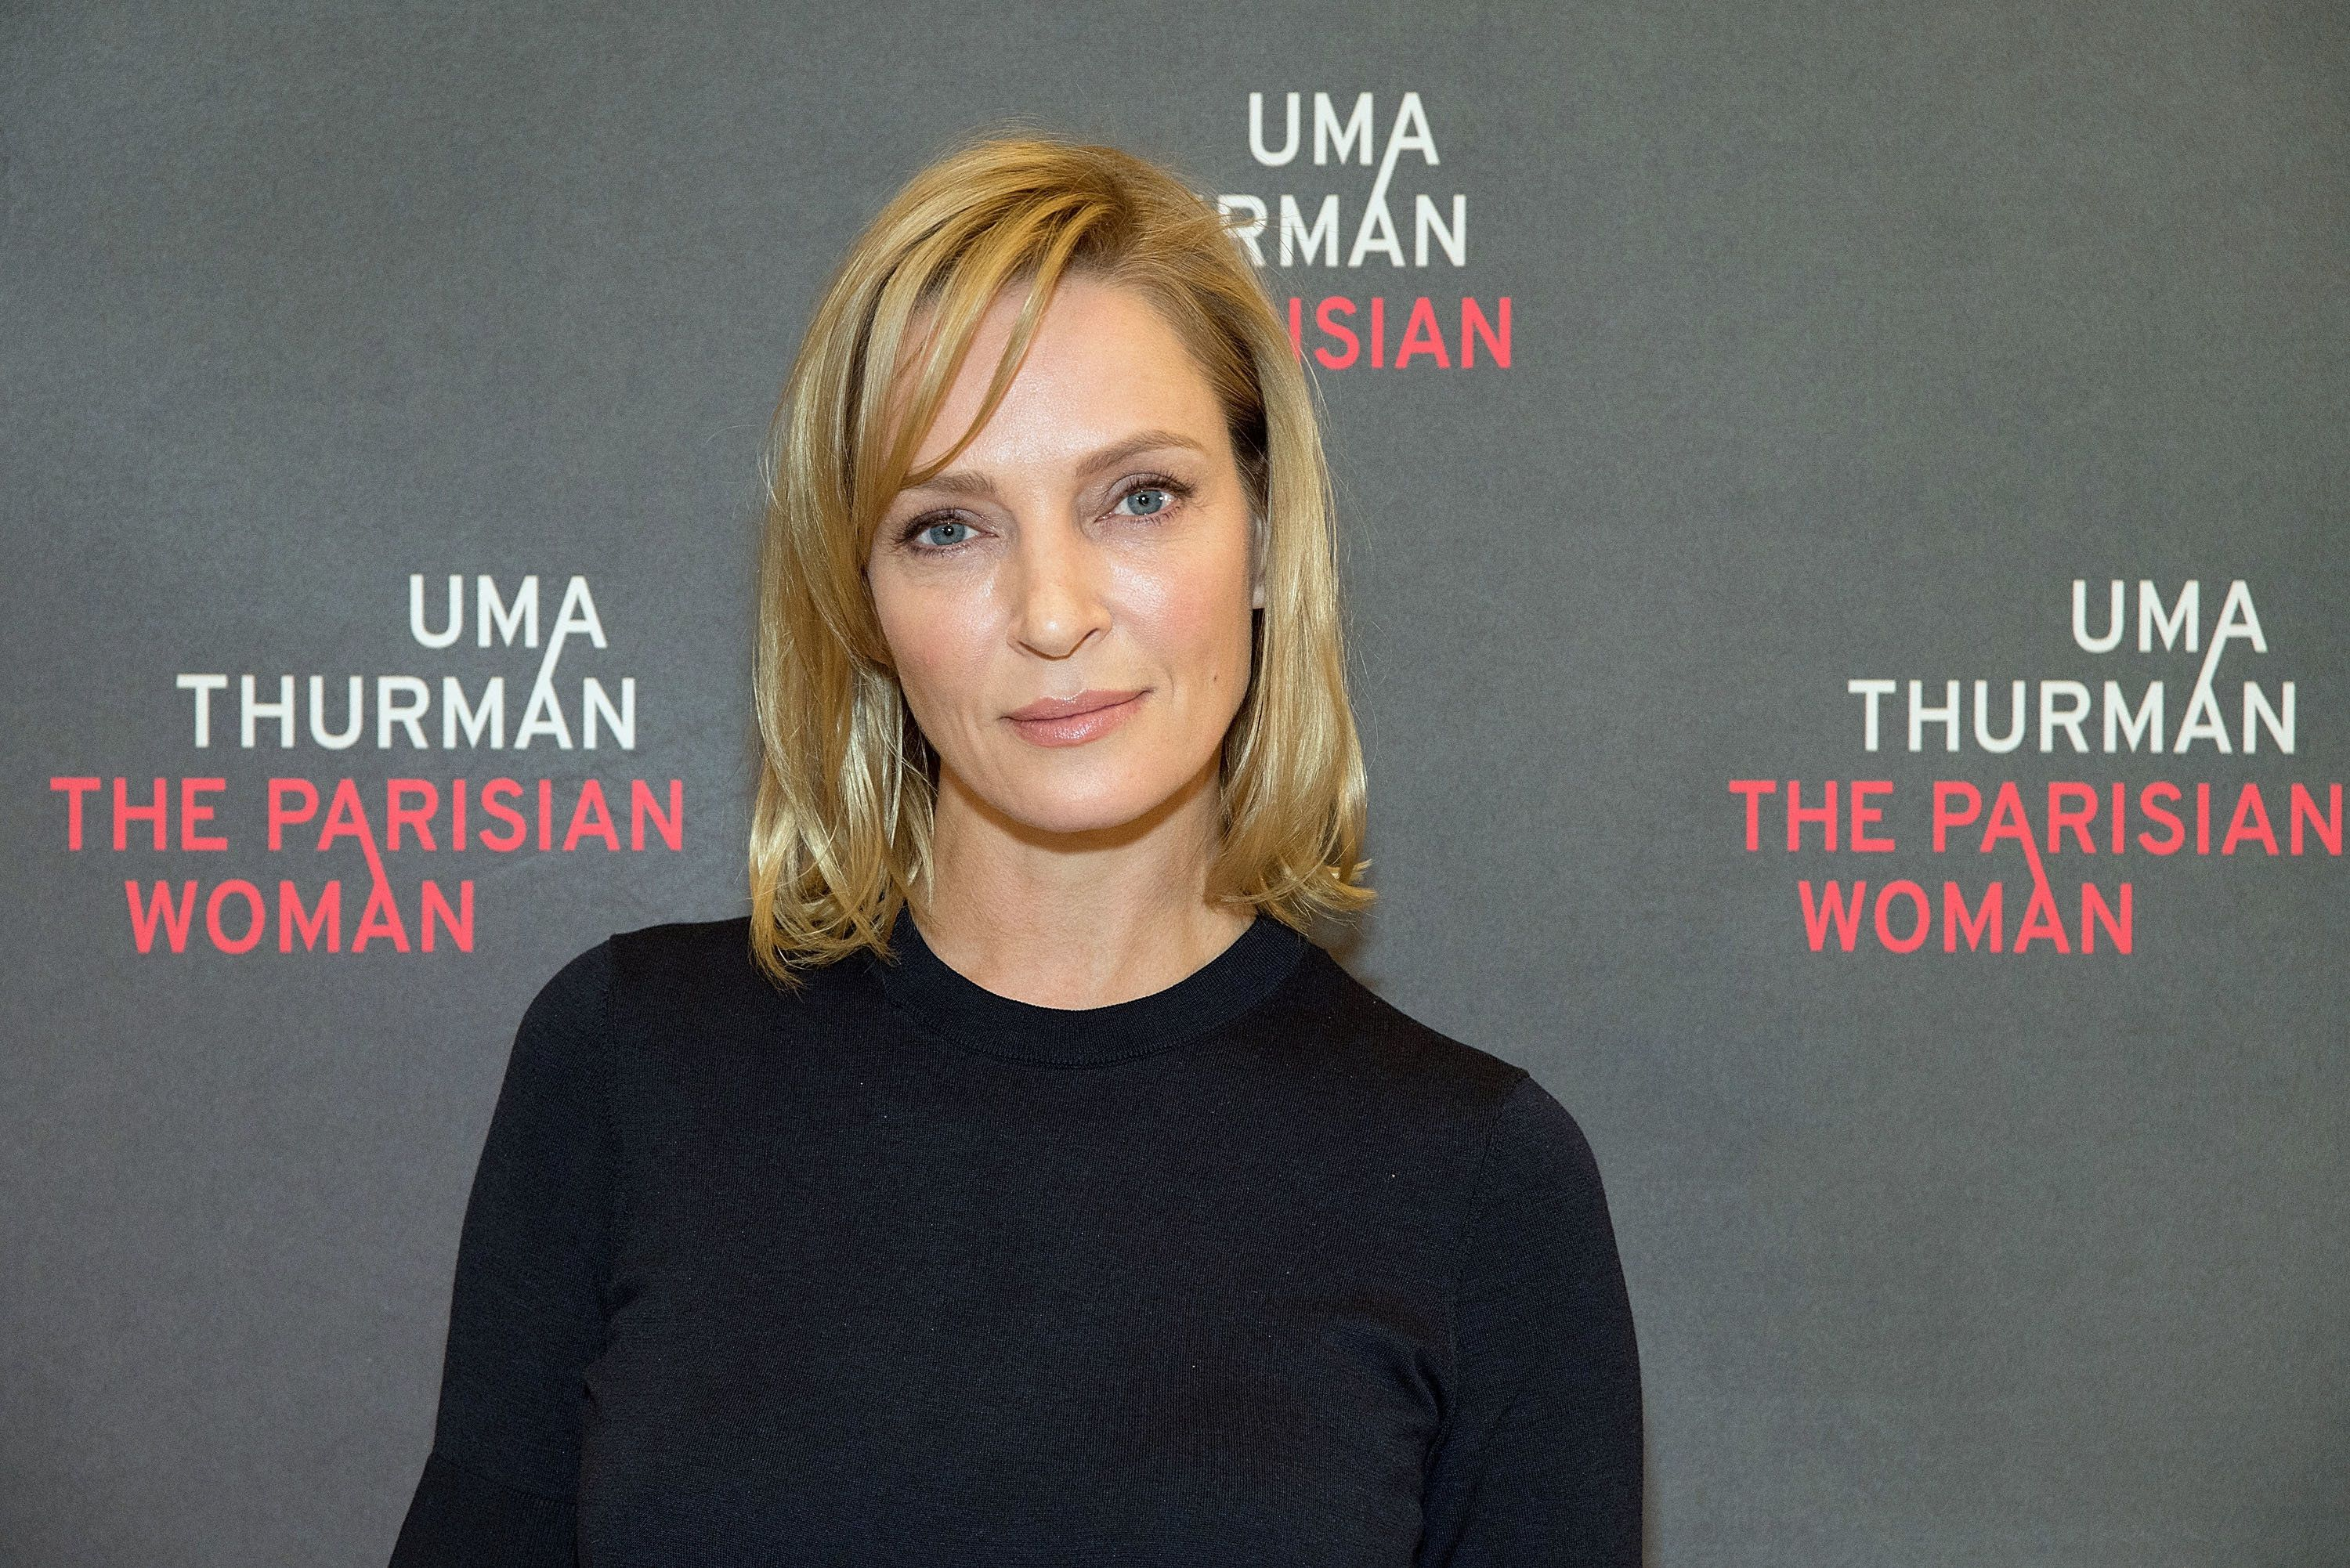 NEW YORK, NY - OCTOBER 18:  Actress Uma Thurman attends 'The Parisian Woman' Press Meet & Greet at The New 42nd Street Studios on October 18, 2017 in New York City.  (Photo by Slaven Vlasic/Getty Images)